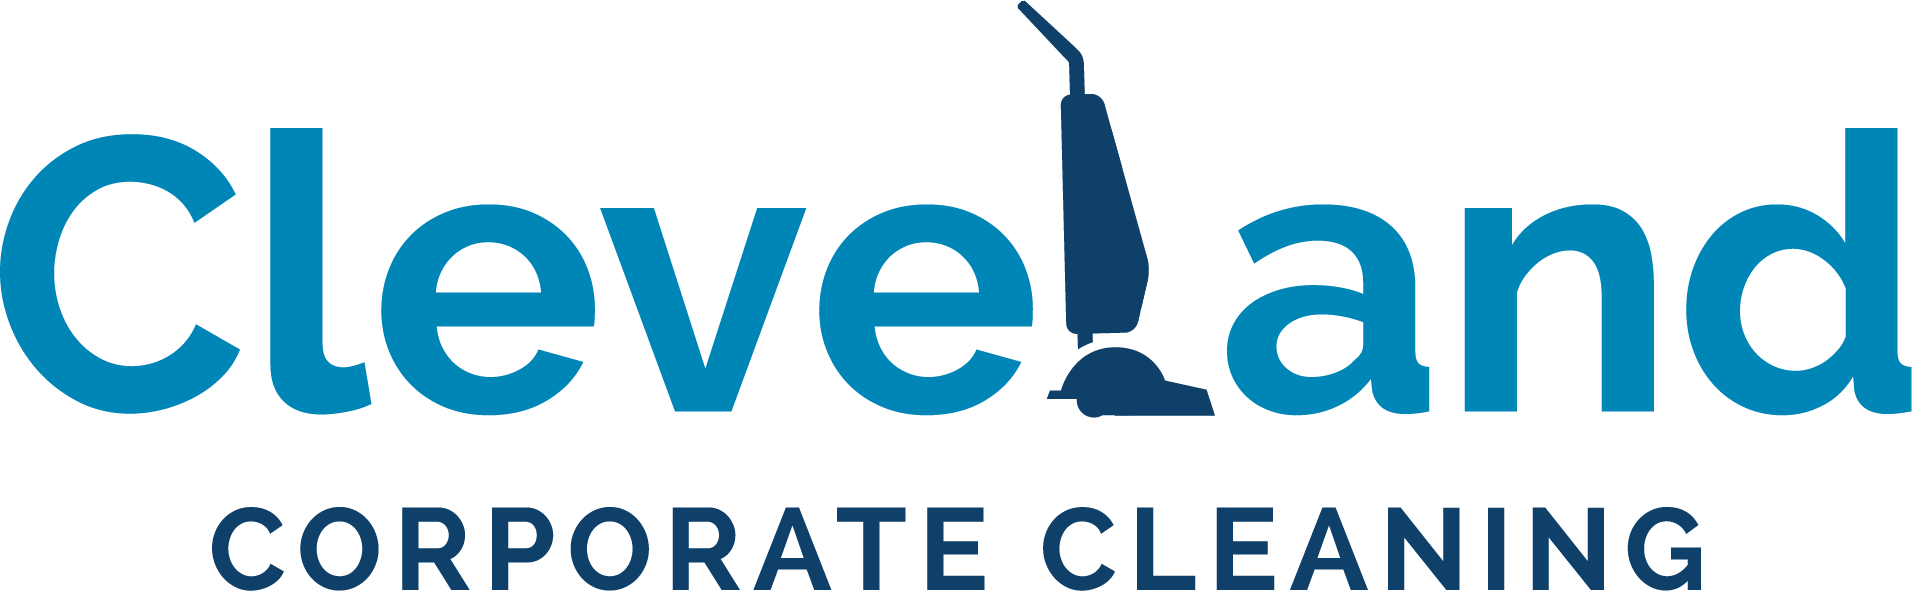 Cleveland Corporate Cleaning